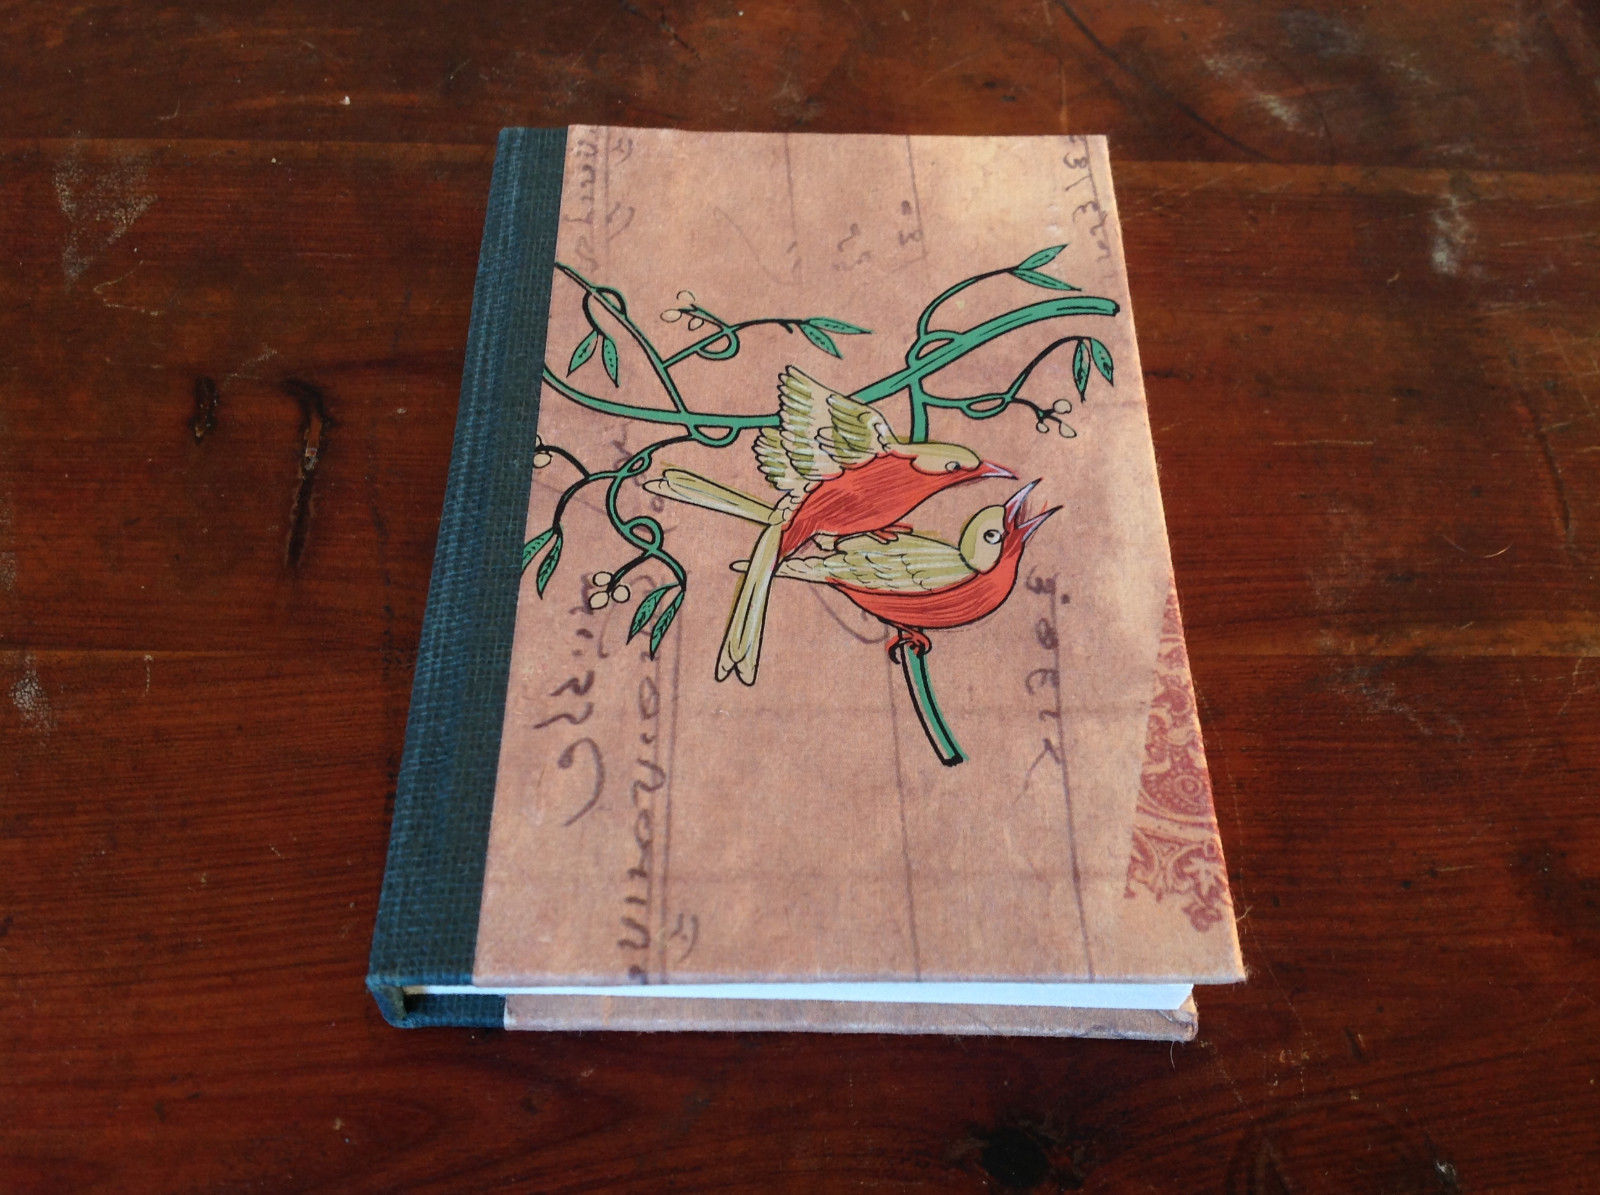 Asian Look Small Handcrafted Journal with Two Birds on Cover Blank Pages